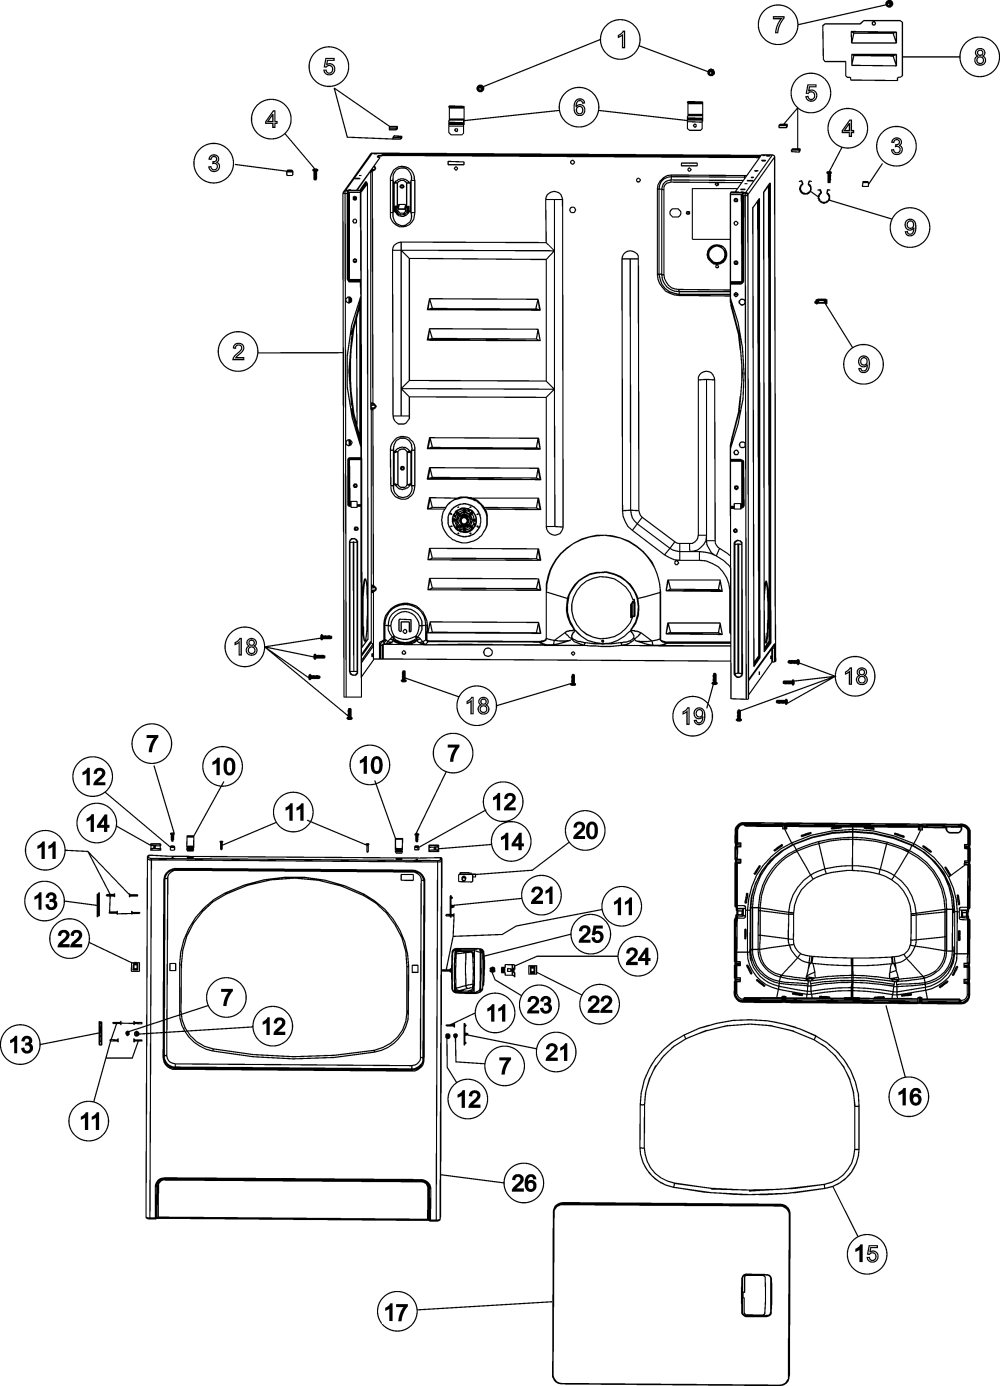 medium resolution of maytag mde4658ayw cabinet front panel diagram